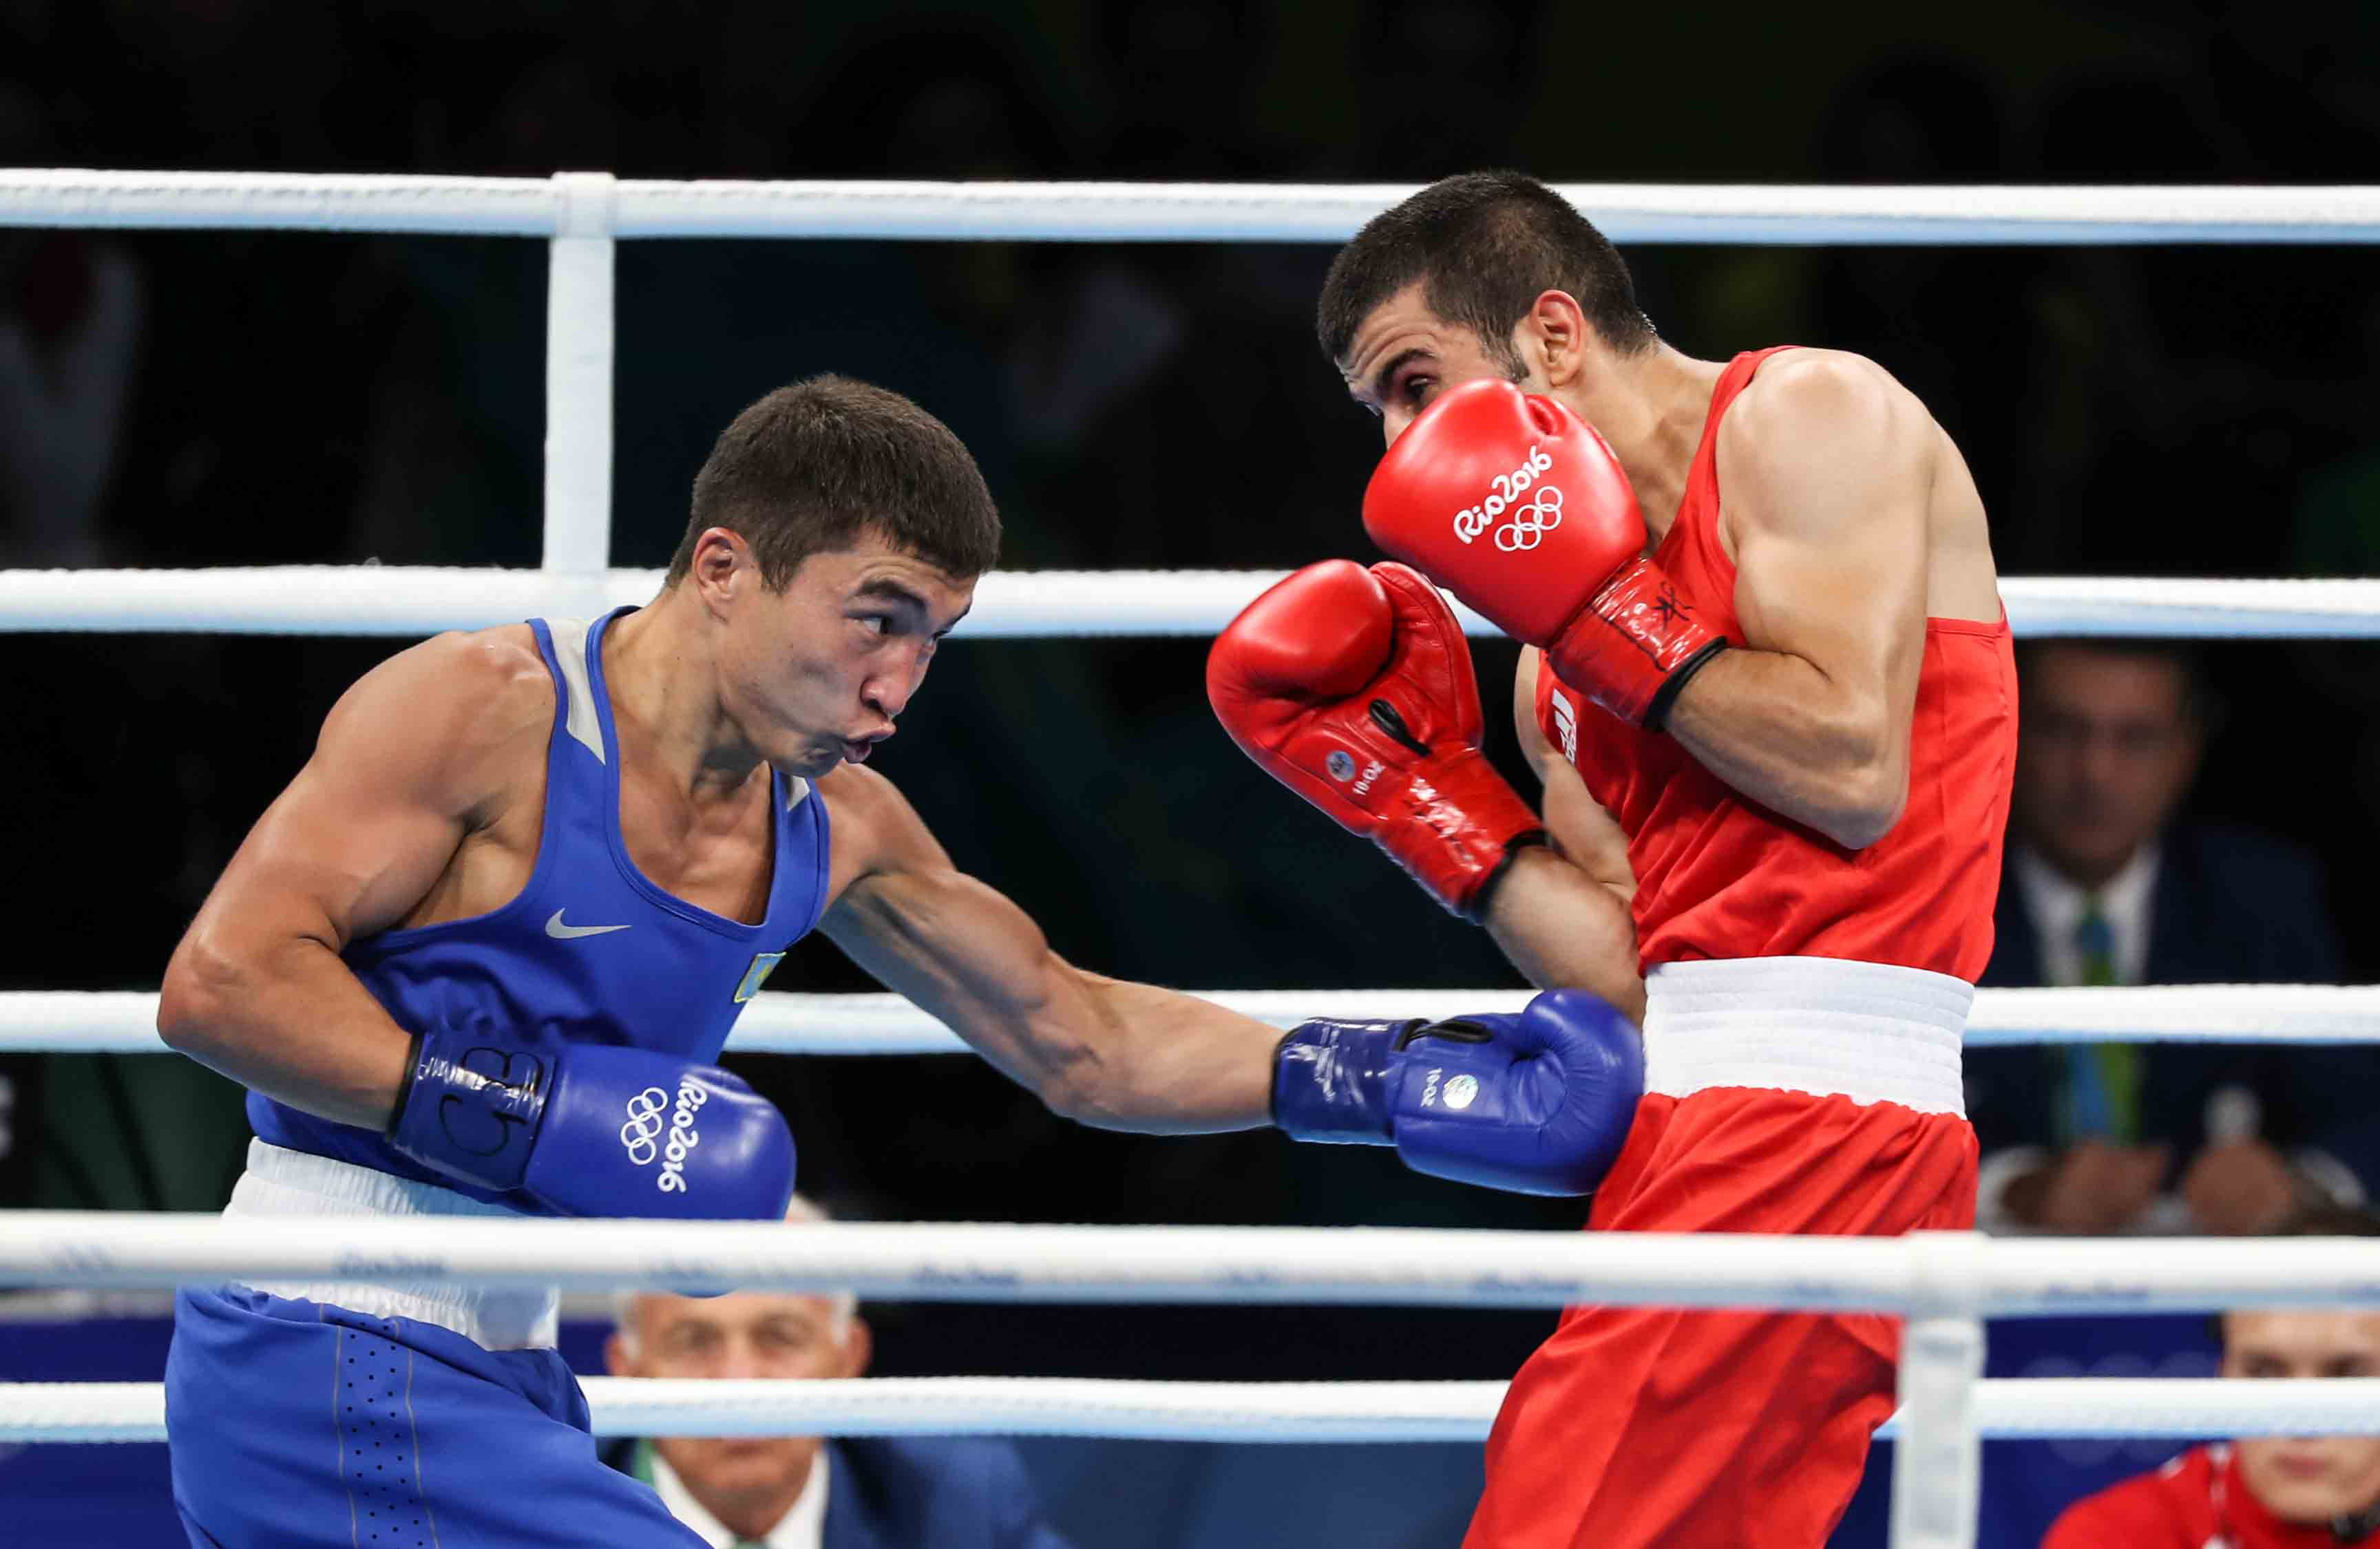 Full team of Kazakh boxers to fight at Asian Championship in Tashkent